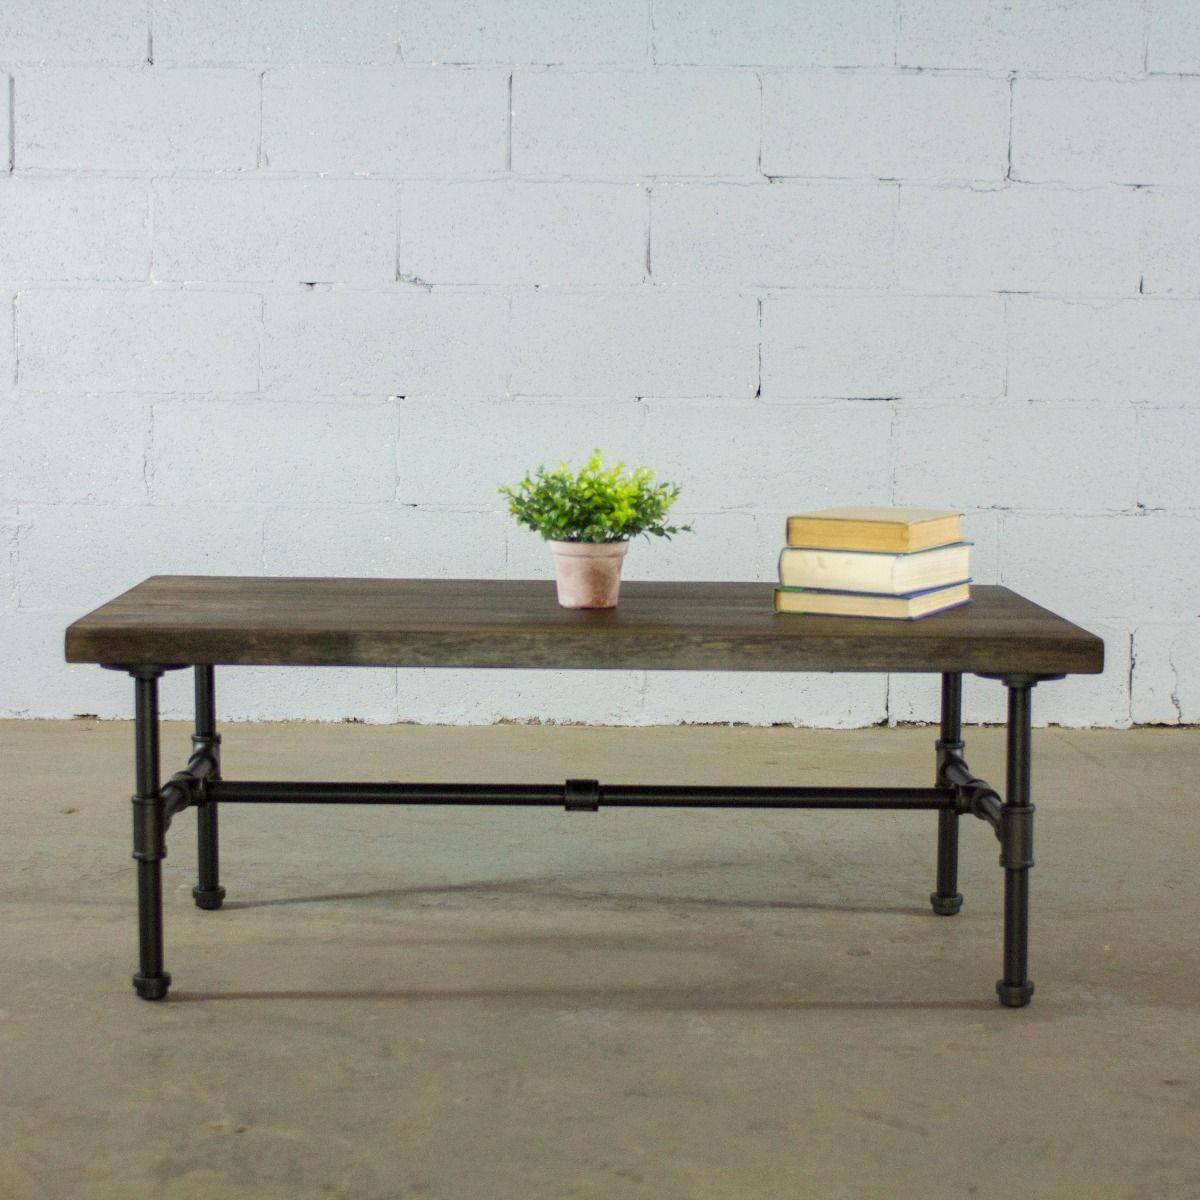 Industrial Mesh Coffee Table: Corvallis Industrial Chic Coffee Table